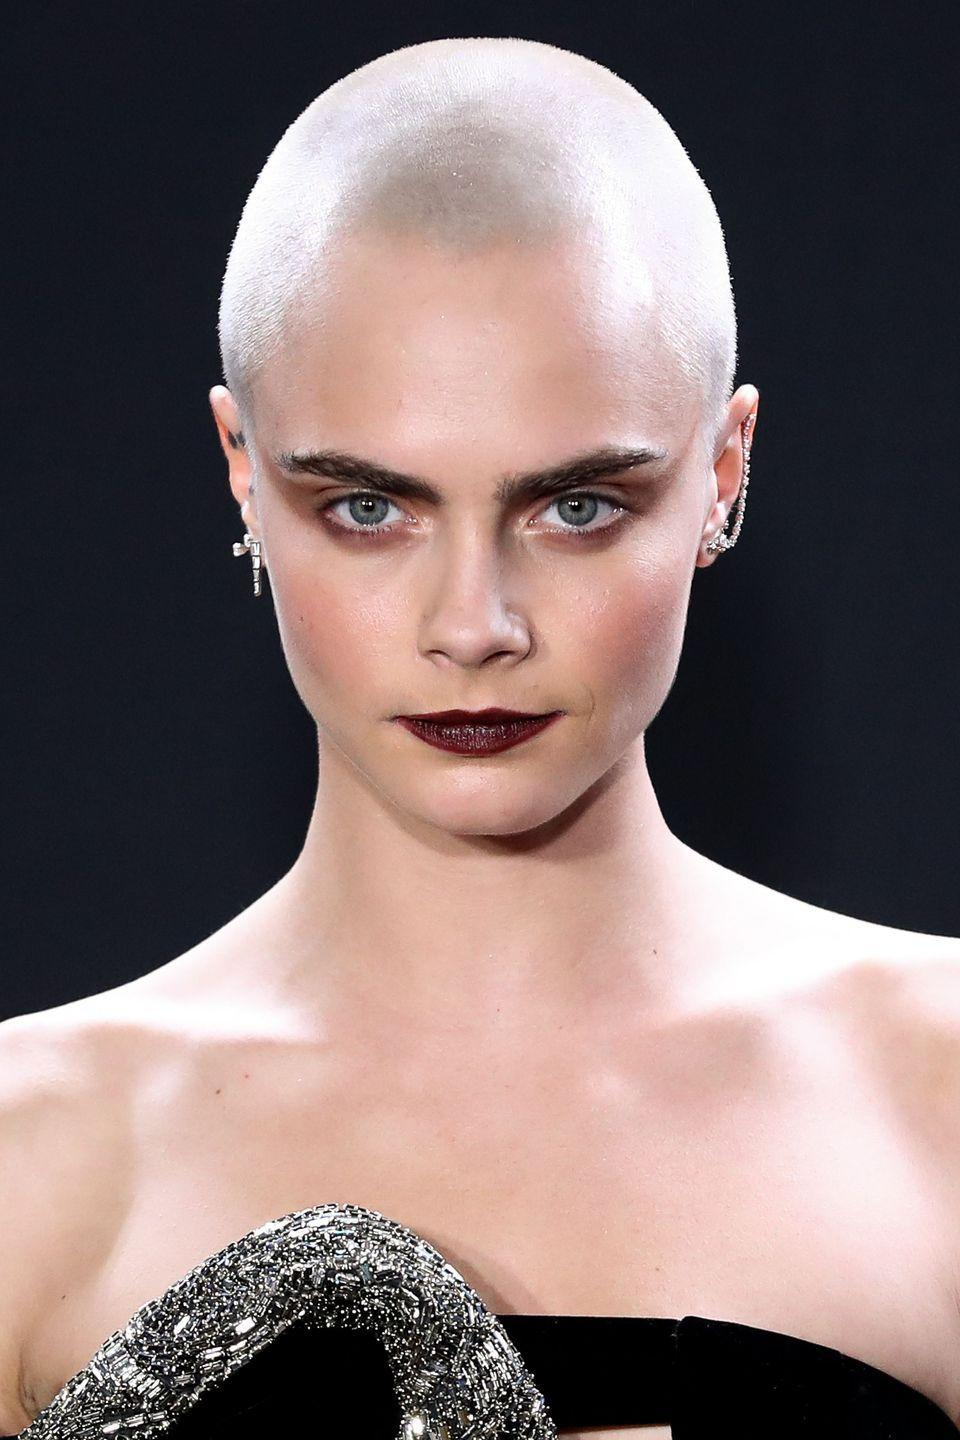 <p>From a blonde bob, to a crop, to a full on freshly shaved head, if we wanted to look like anyone with a buzz cut it would be Cara.</p>